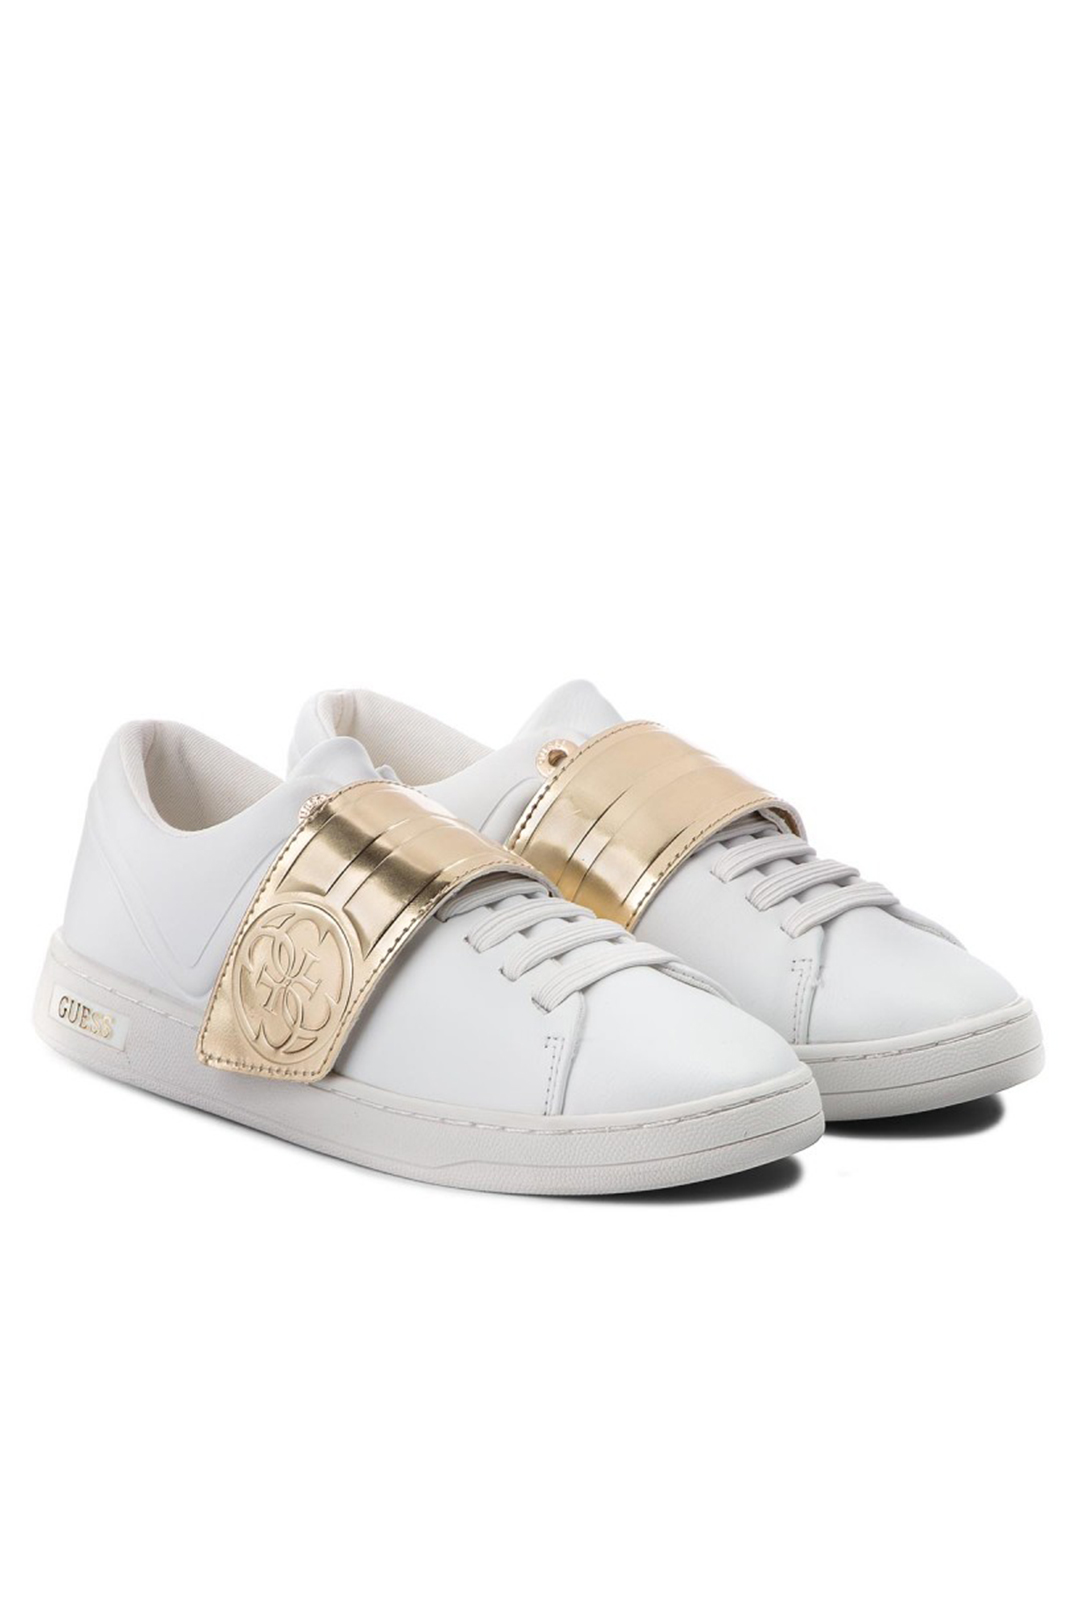 Baskets / Sneakers  Guess jeans FLCEO4 ELE12 WHIGO